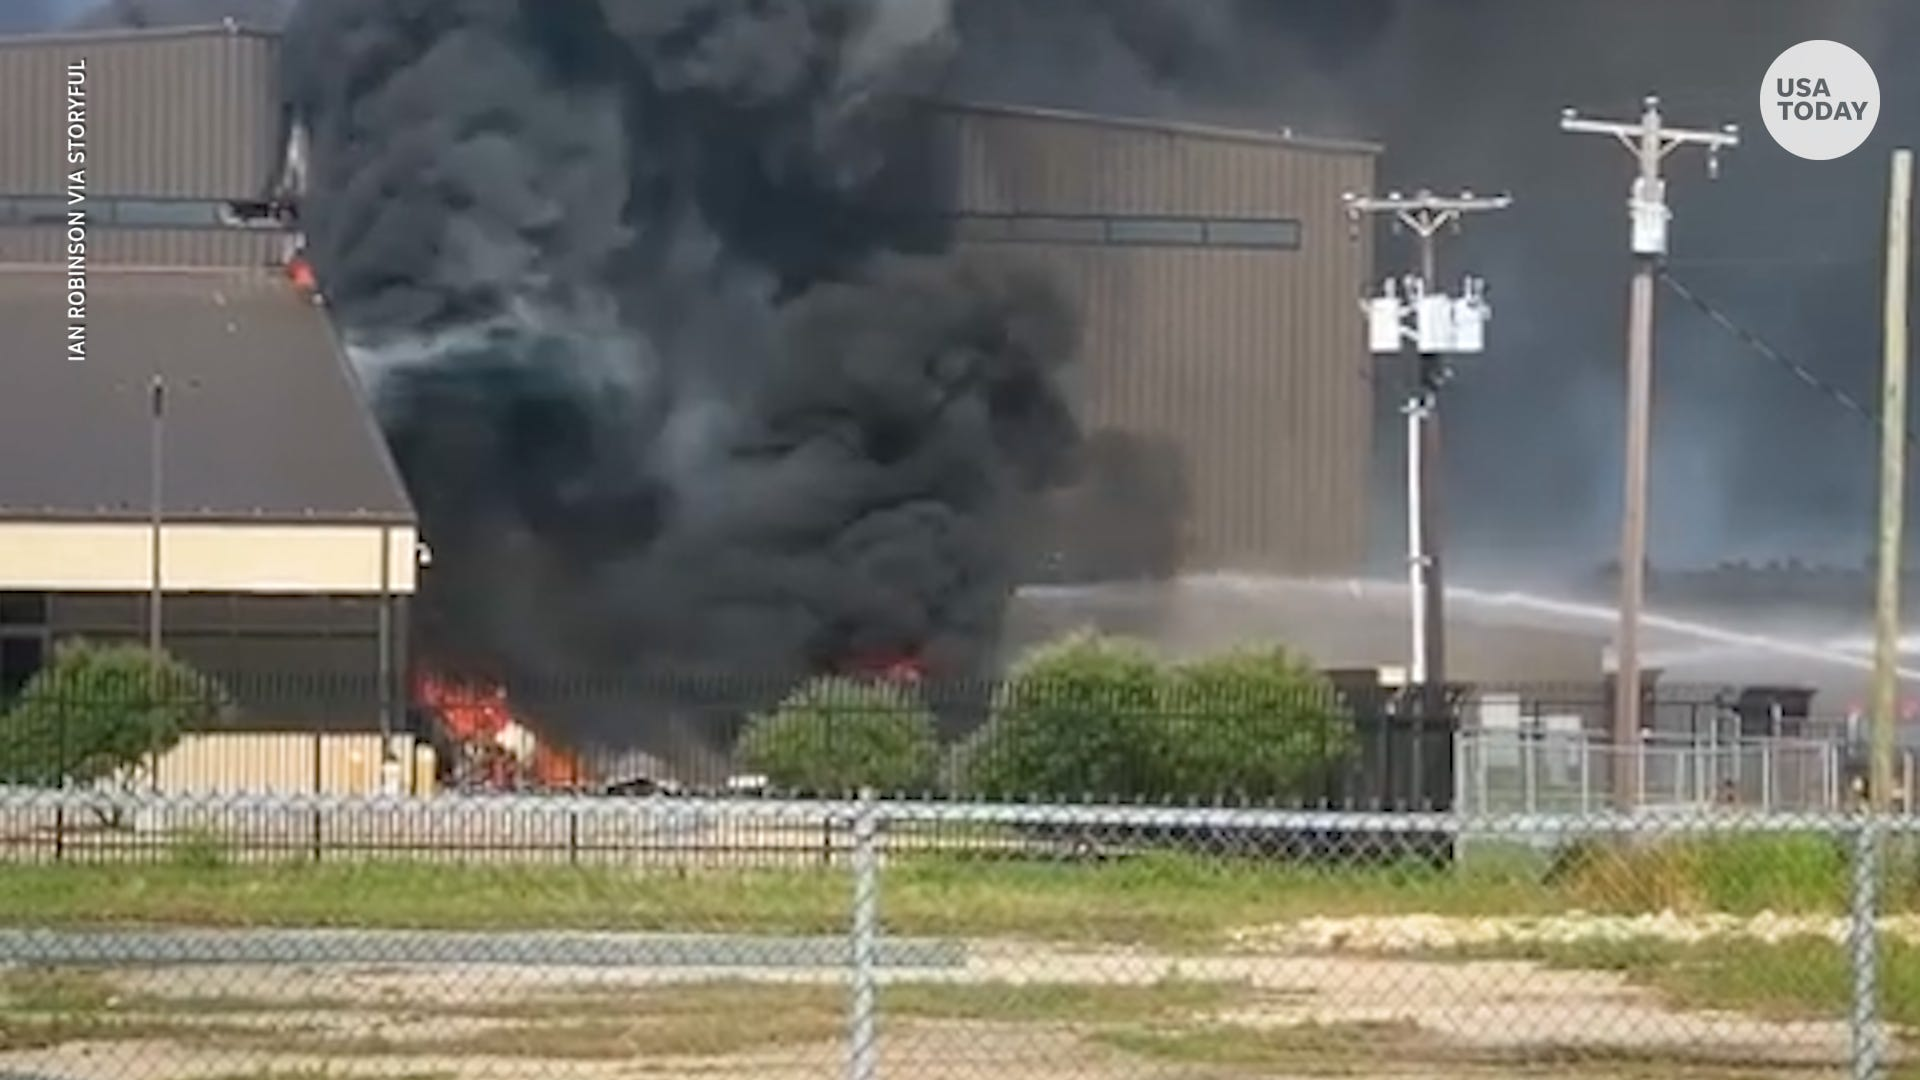 Texas plane crash: 10 killed in small plane accident at